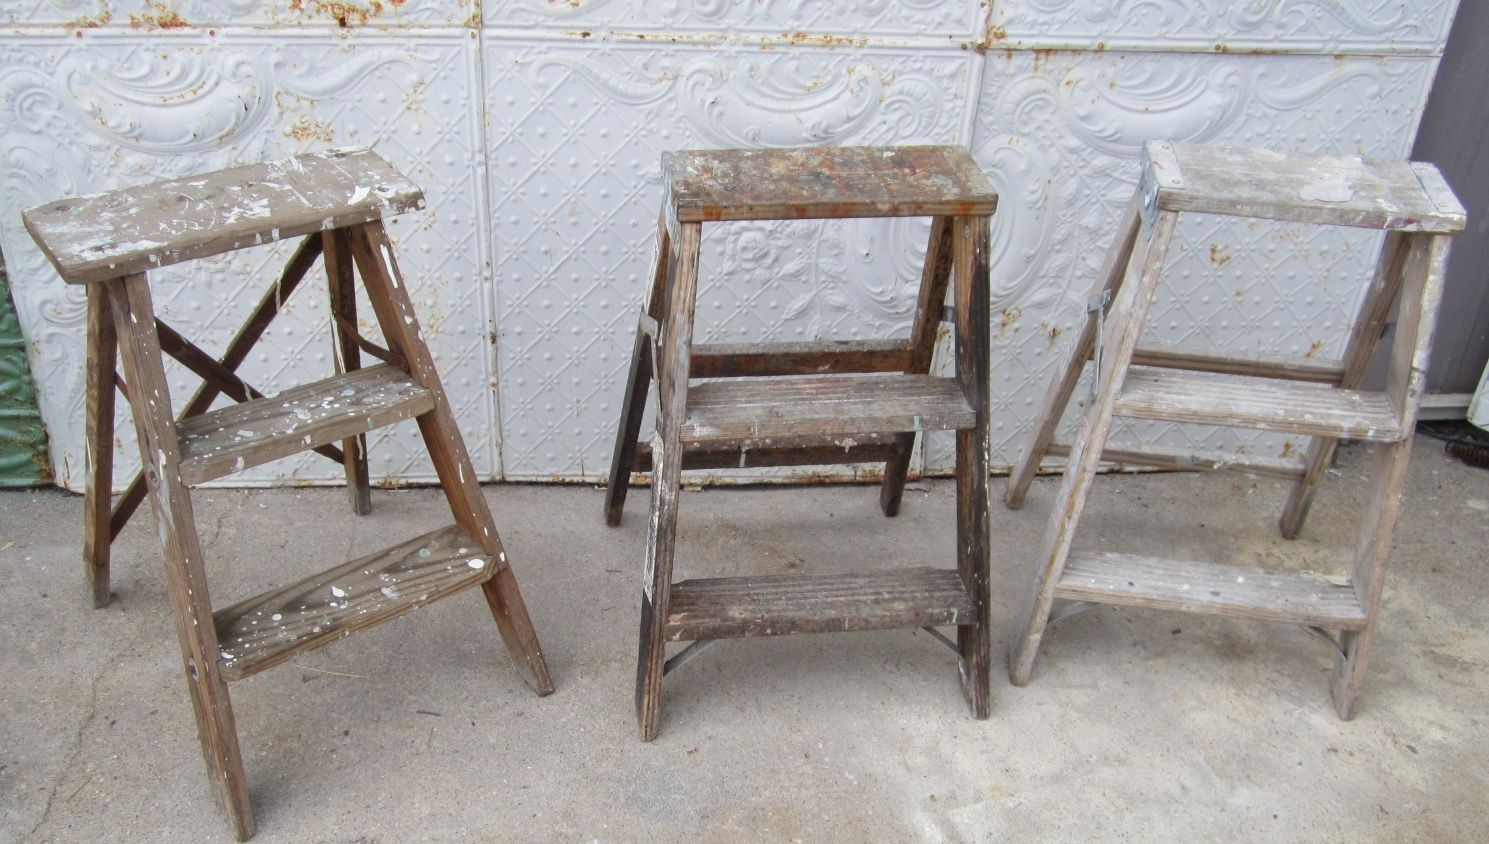 Excellent Tall 3 Step Wooden Rustic Step Stool Rustic Alder 3 Step Machost Co Dining Chair Design Ideas Machostcouk